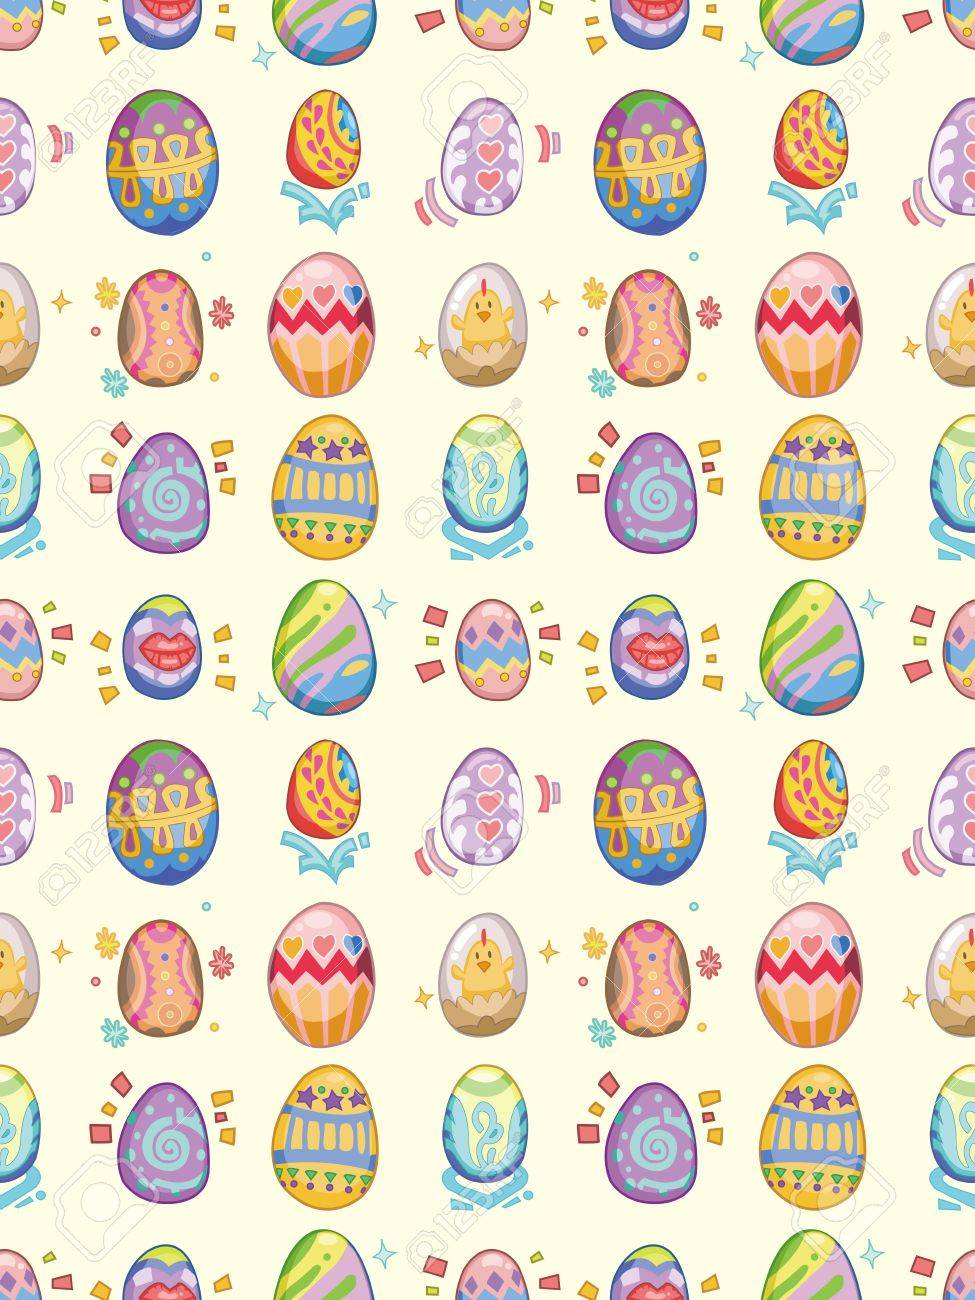 Seamless Easter Egg Patterncartoon Illustration Royalty Free